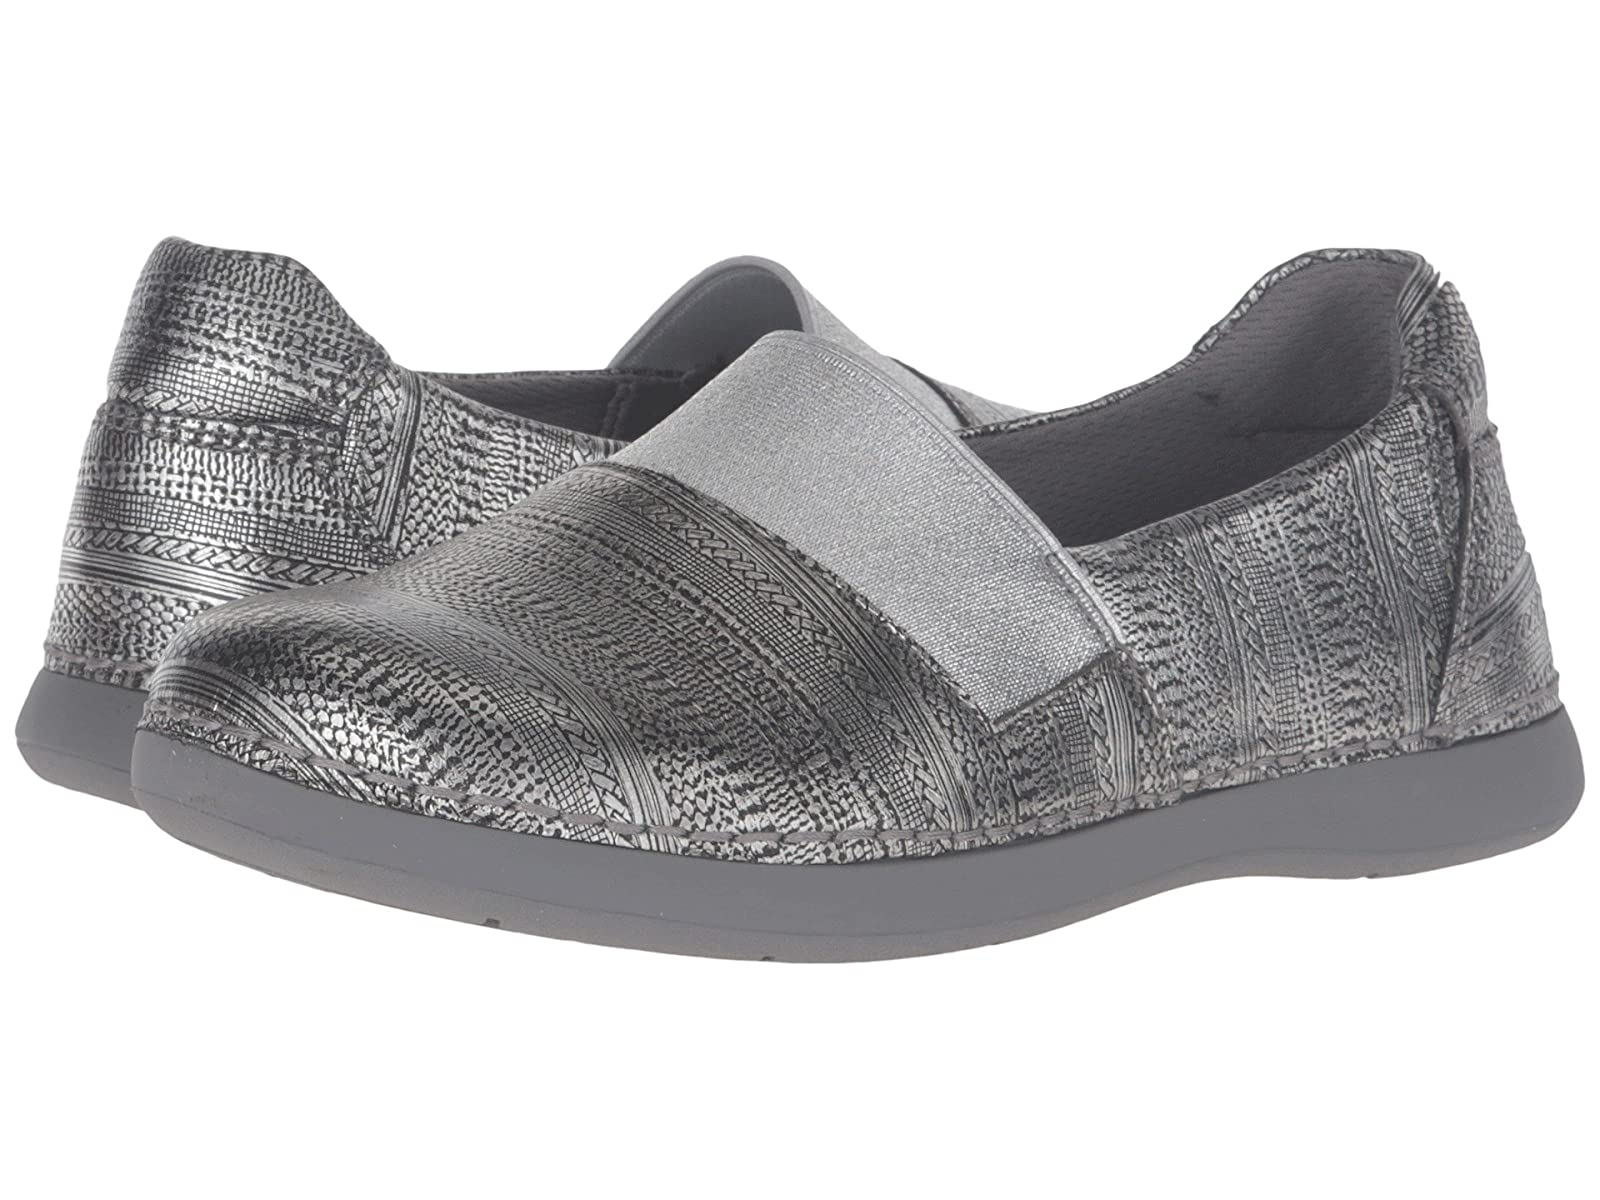 Alegria GleeAtmospheric grades have affordable shoes